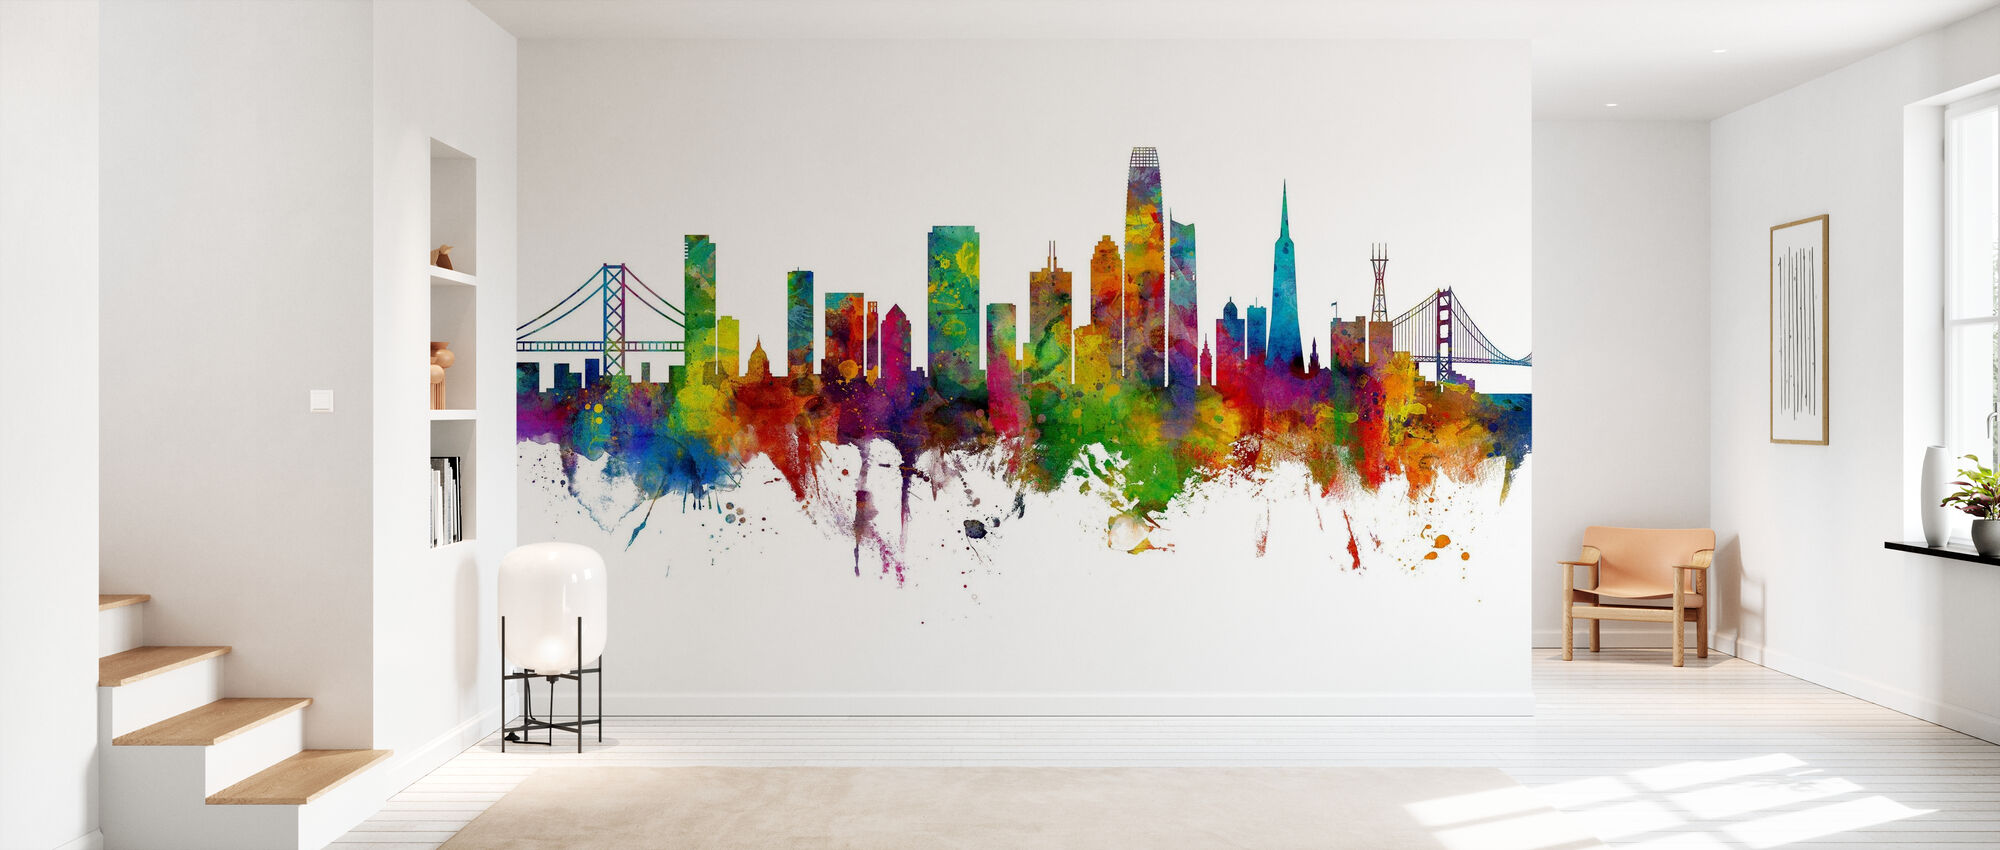 San Francisco California Skyline - Wallpaper - Hallway